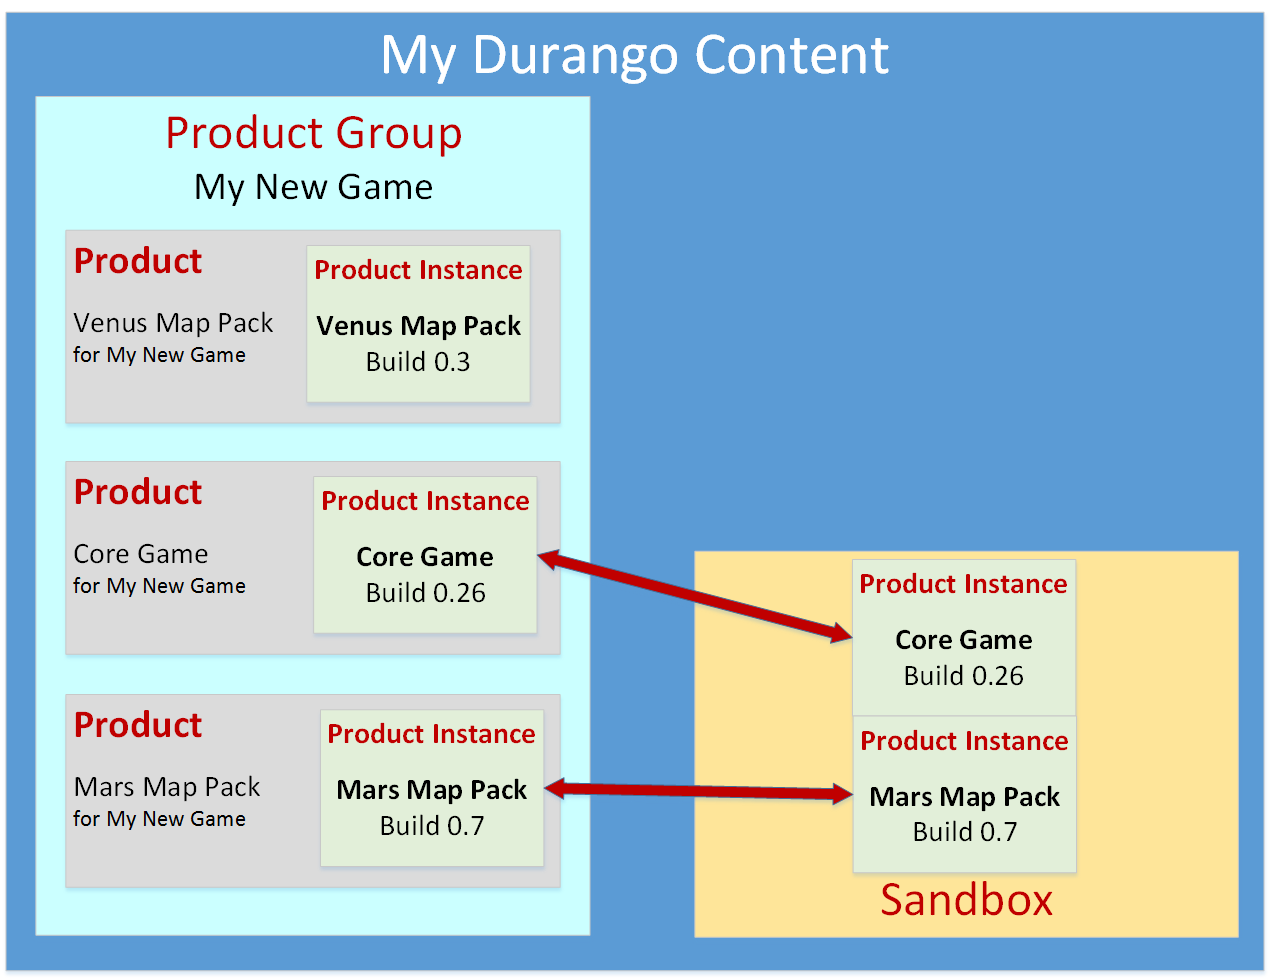 Advanced Xbox Live Sandboxes Uwp App Developer Microsoft Docs Dvr Block Diagram 3d Printer Projector Figure 2 The Relationships Between A Product Group Instance And Sandbox